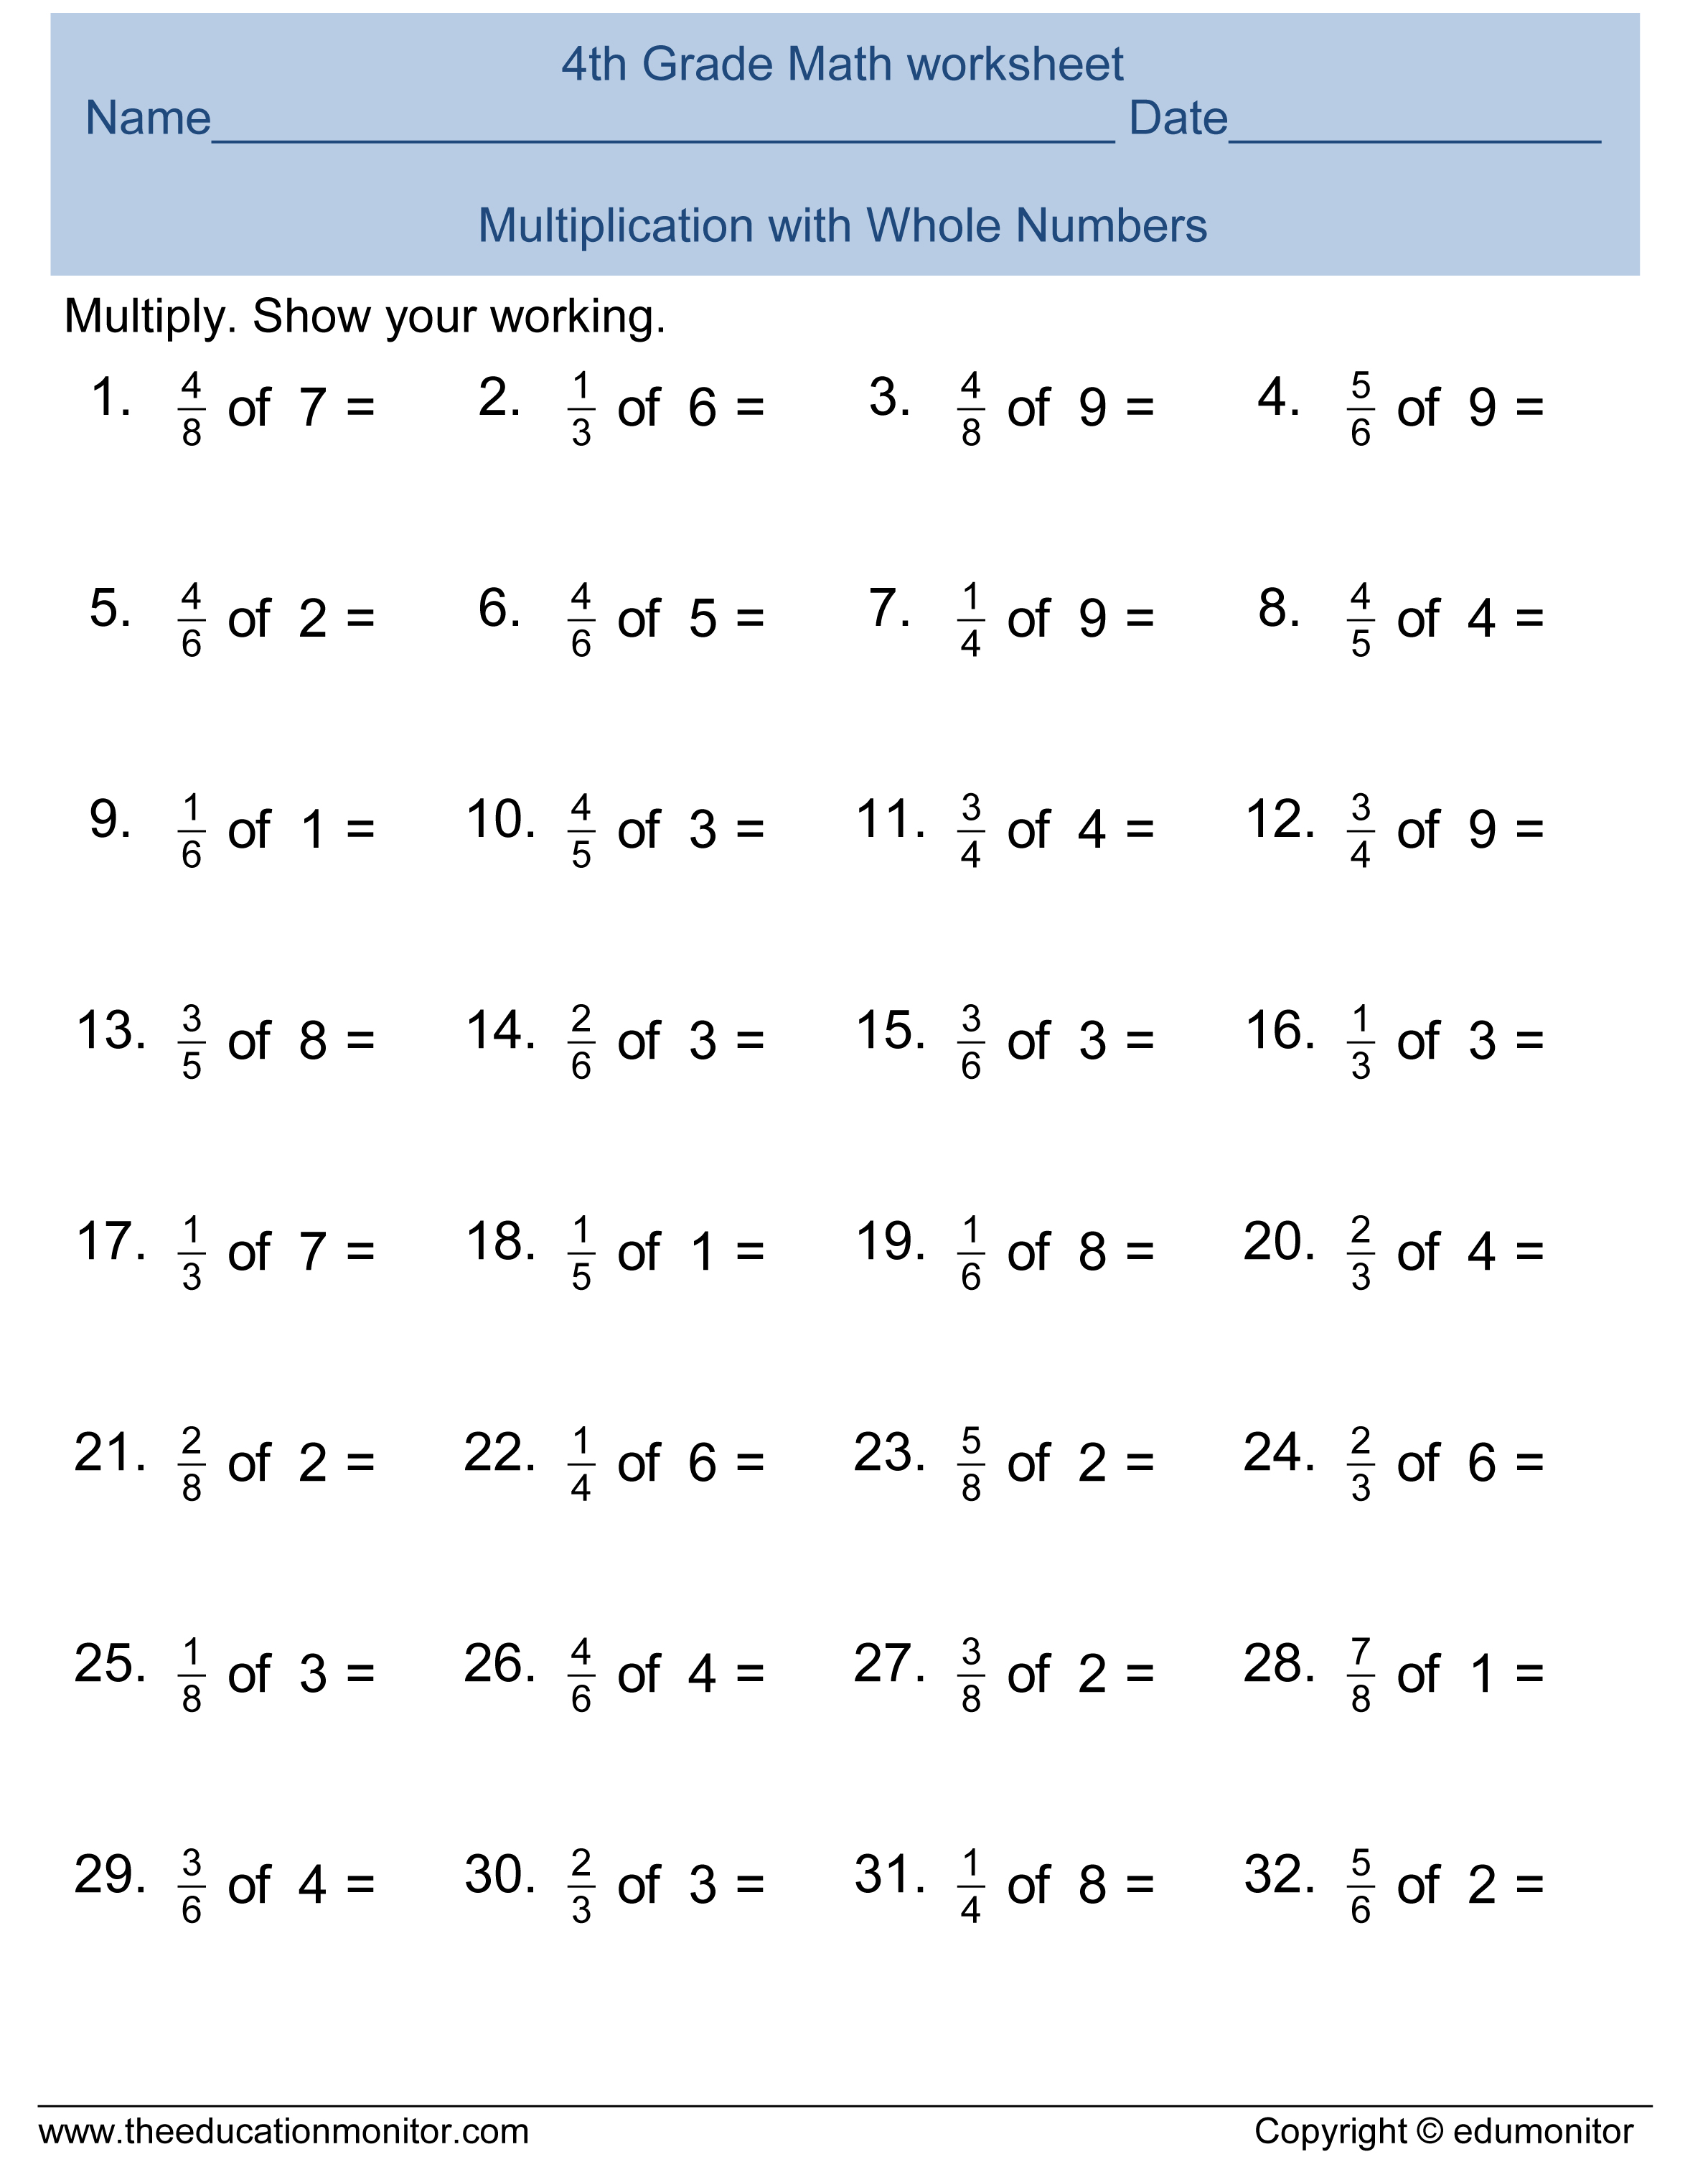 worksheet Multiplying Fractions By Whole Numbers Worksheets 4th Grade free printable worksheets for 4th grade adding and subtracting fractions grade